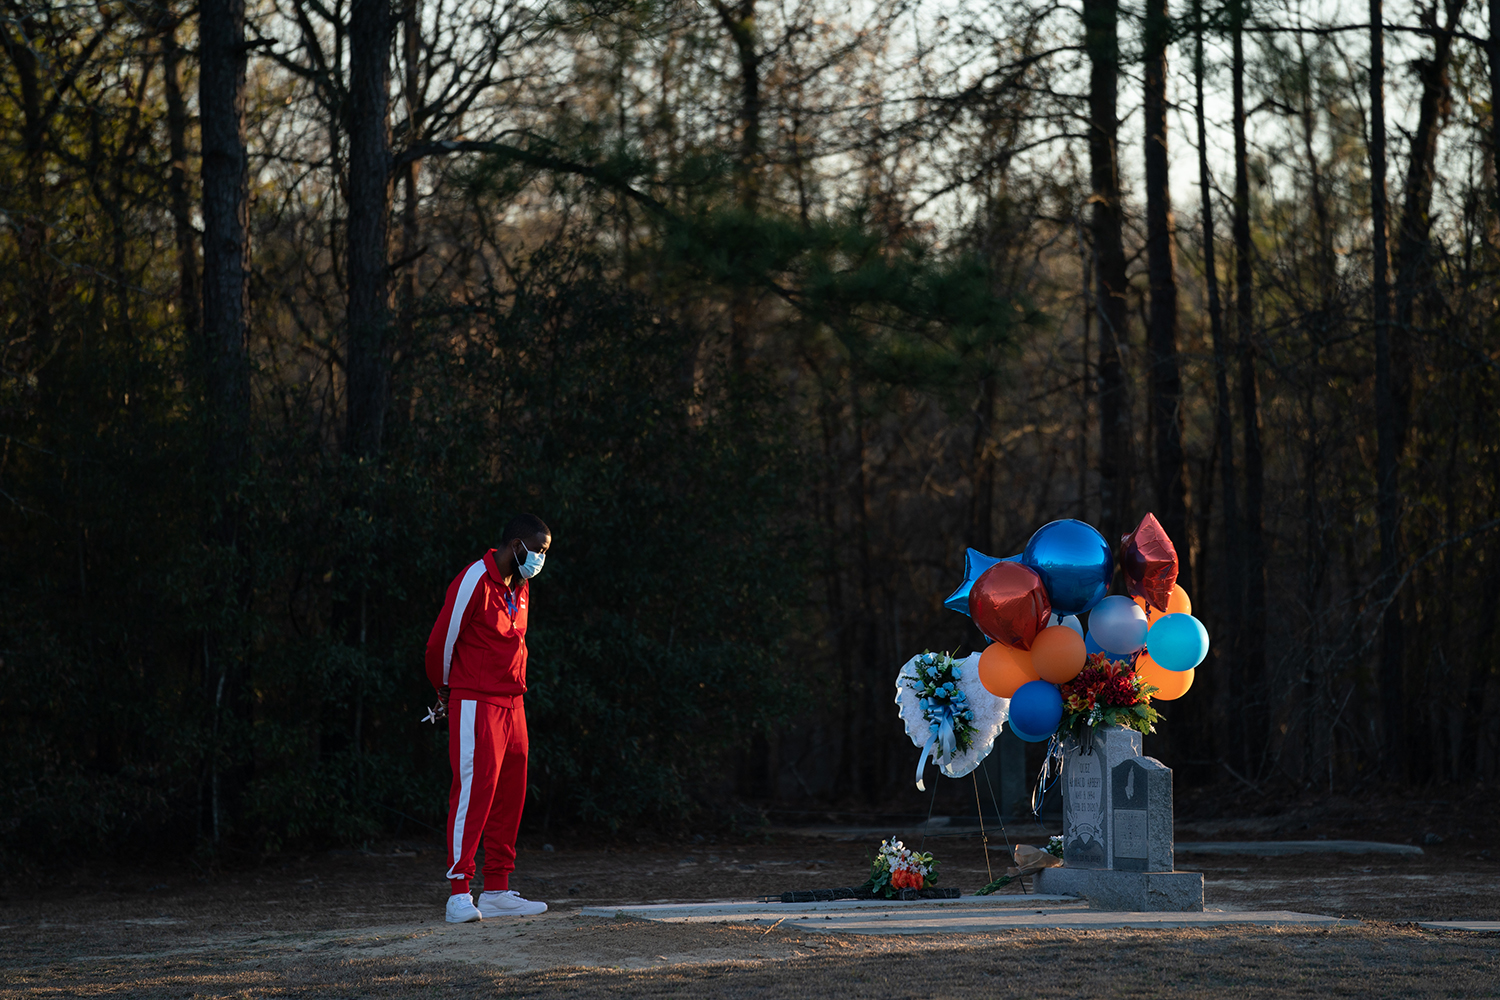 Bianca Dorsey visits the gravesite of Ahmaud Arbery during a candlelight vigil at New Springfield Baptist Church in Waynesboro, Georgia, on Feb. 23. Arbery, a Black man, was shot and killed while jogging near Brunswick, Georgia, in 2020 after being chased by two white men. Sean Rayford/Getty Images